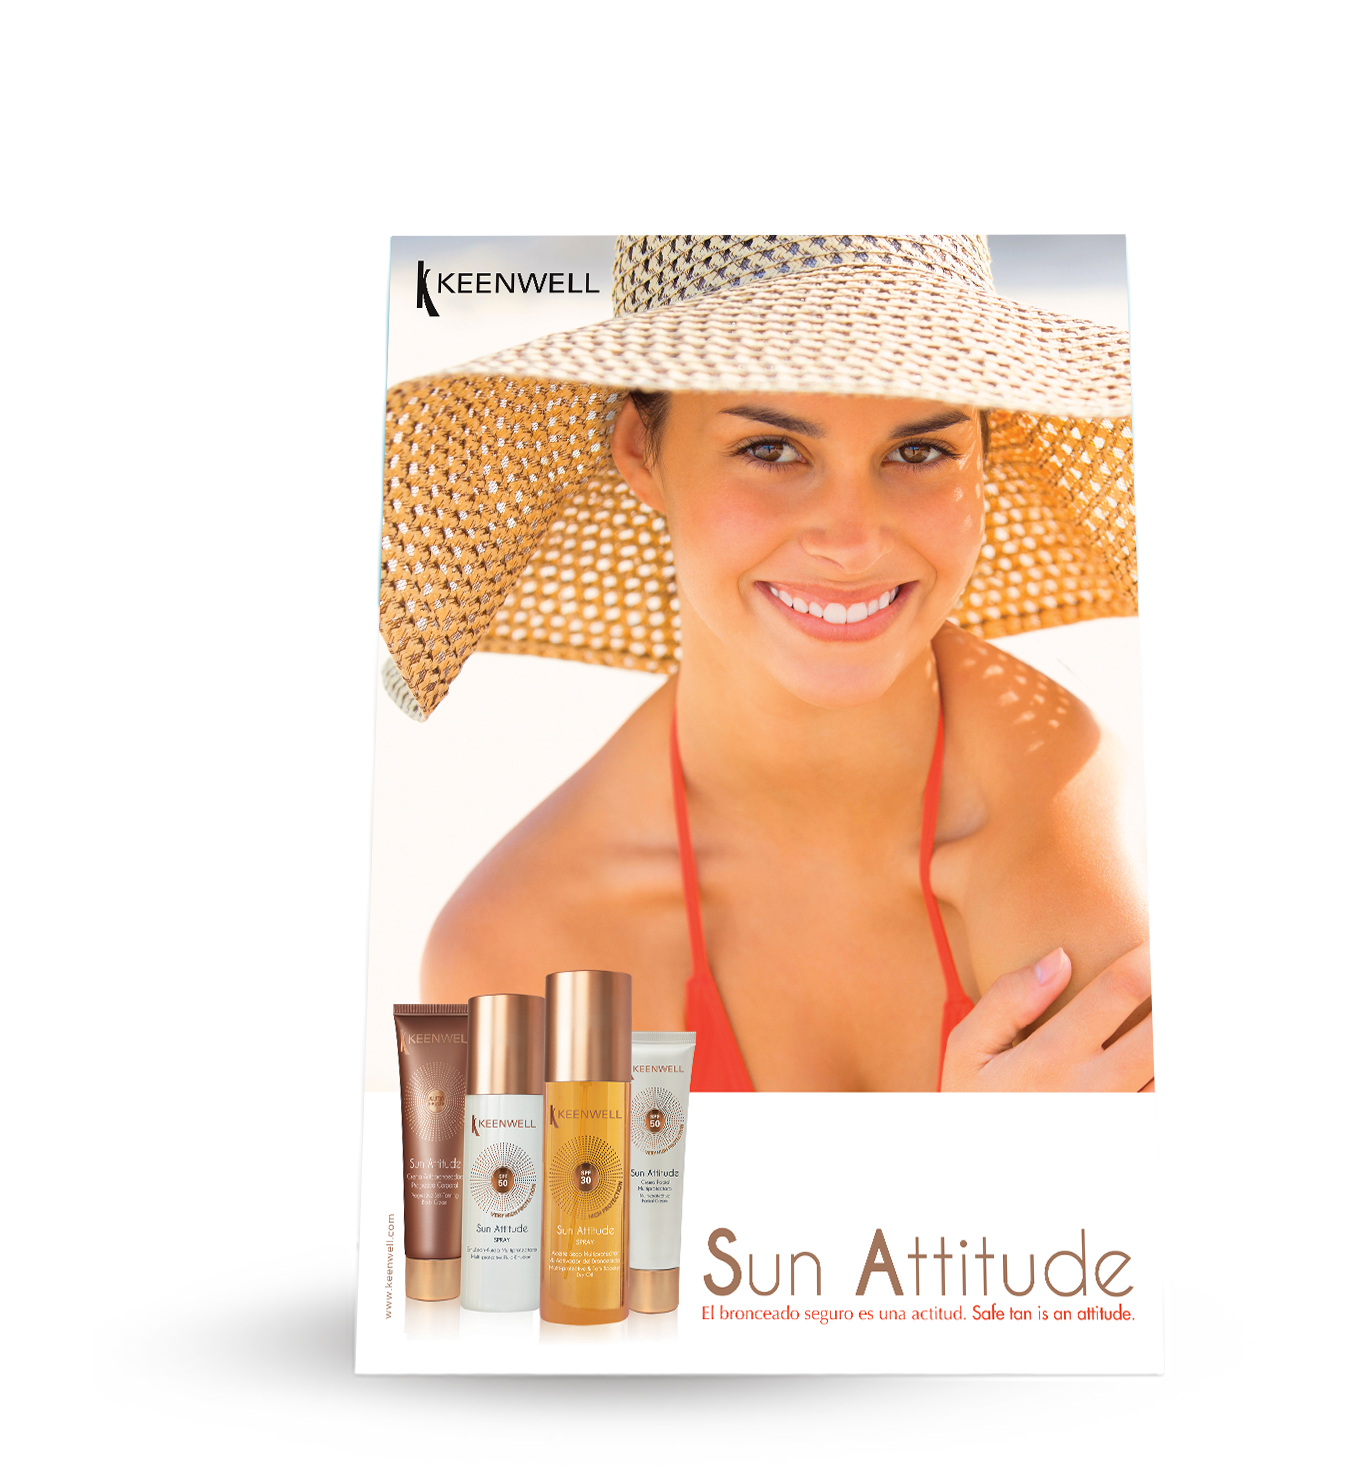 SUN ATTITUDE - Stand Floor Display